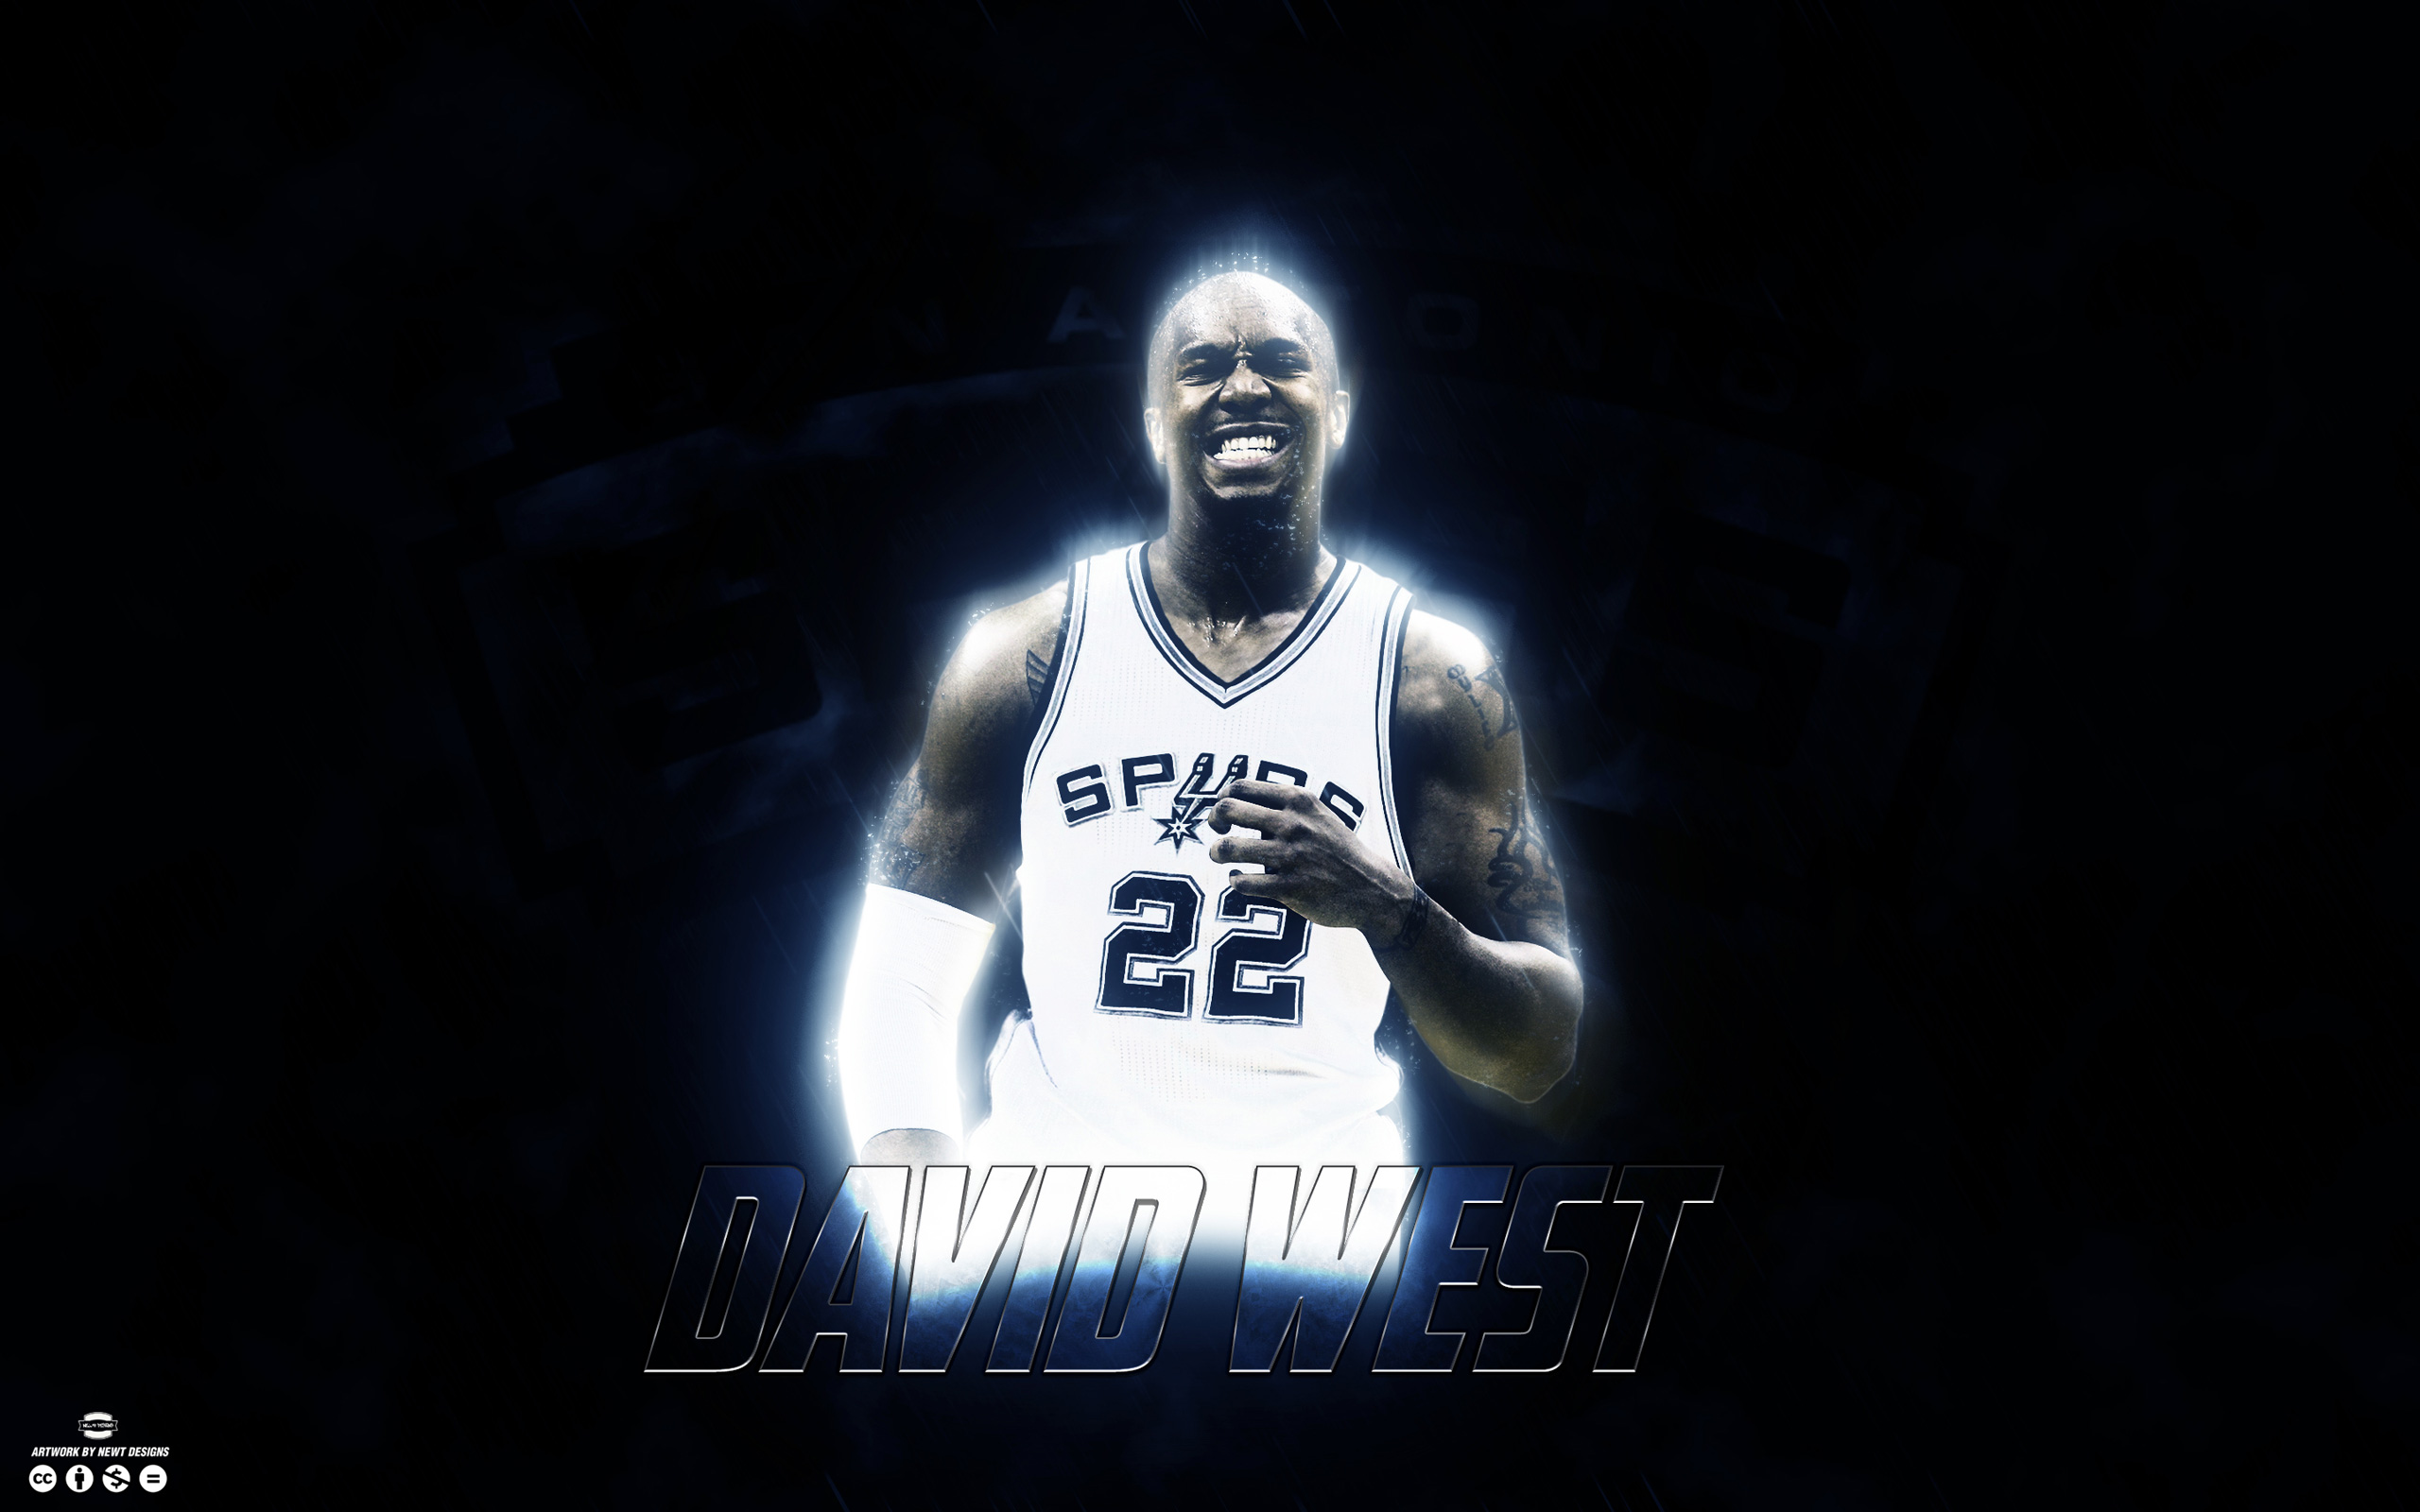 David West San Antonio Spurs 2015 Wallpaper | Basketball Wallpapers at BasketWallpapers.com